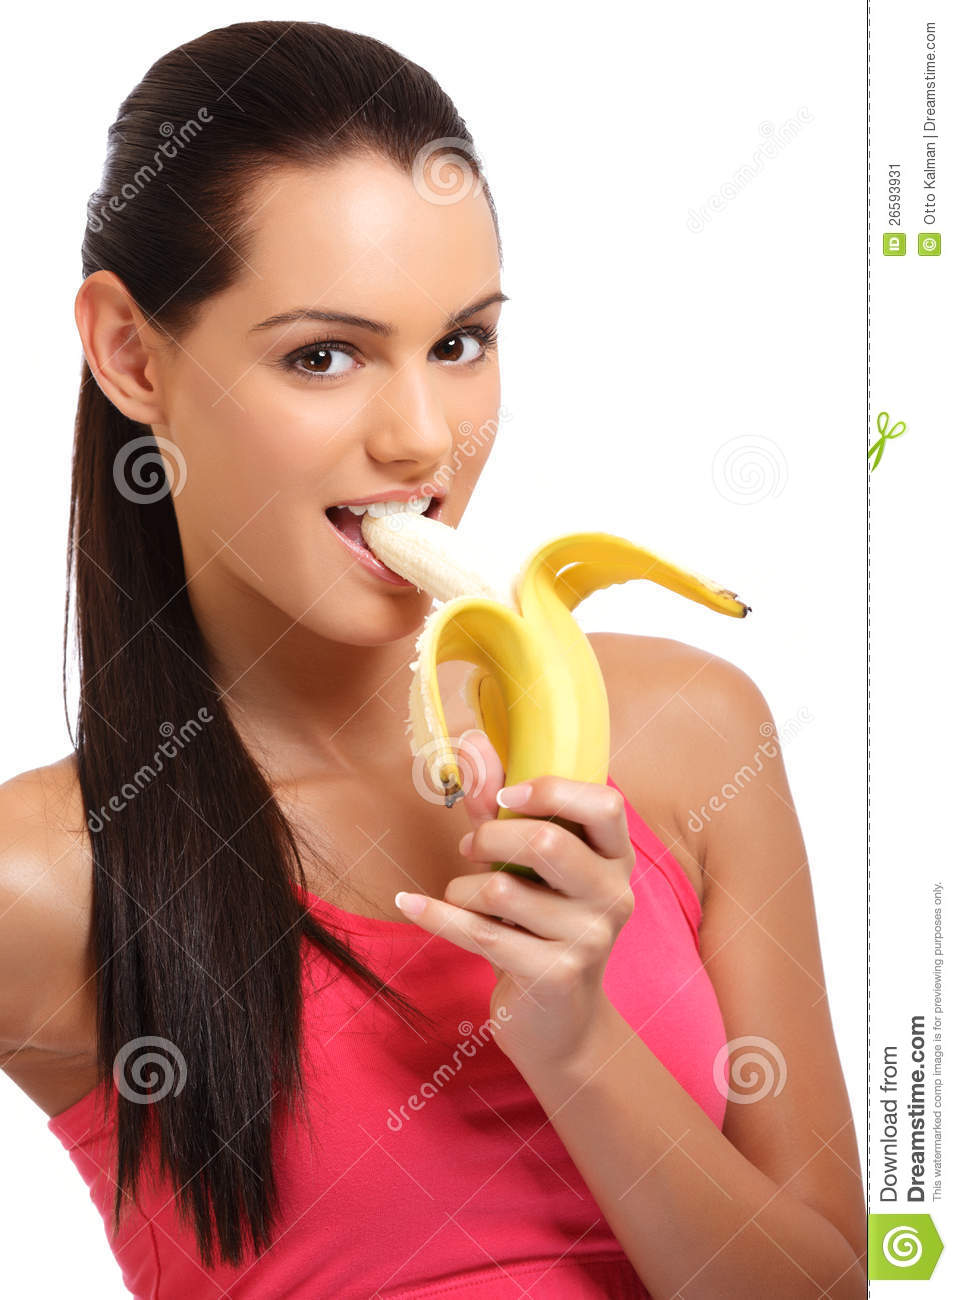 black woman eating banana portrait of a banana eating young woman in studio stock 5941